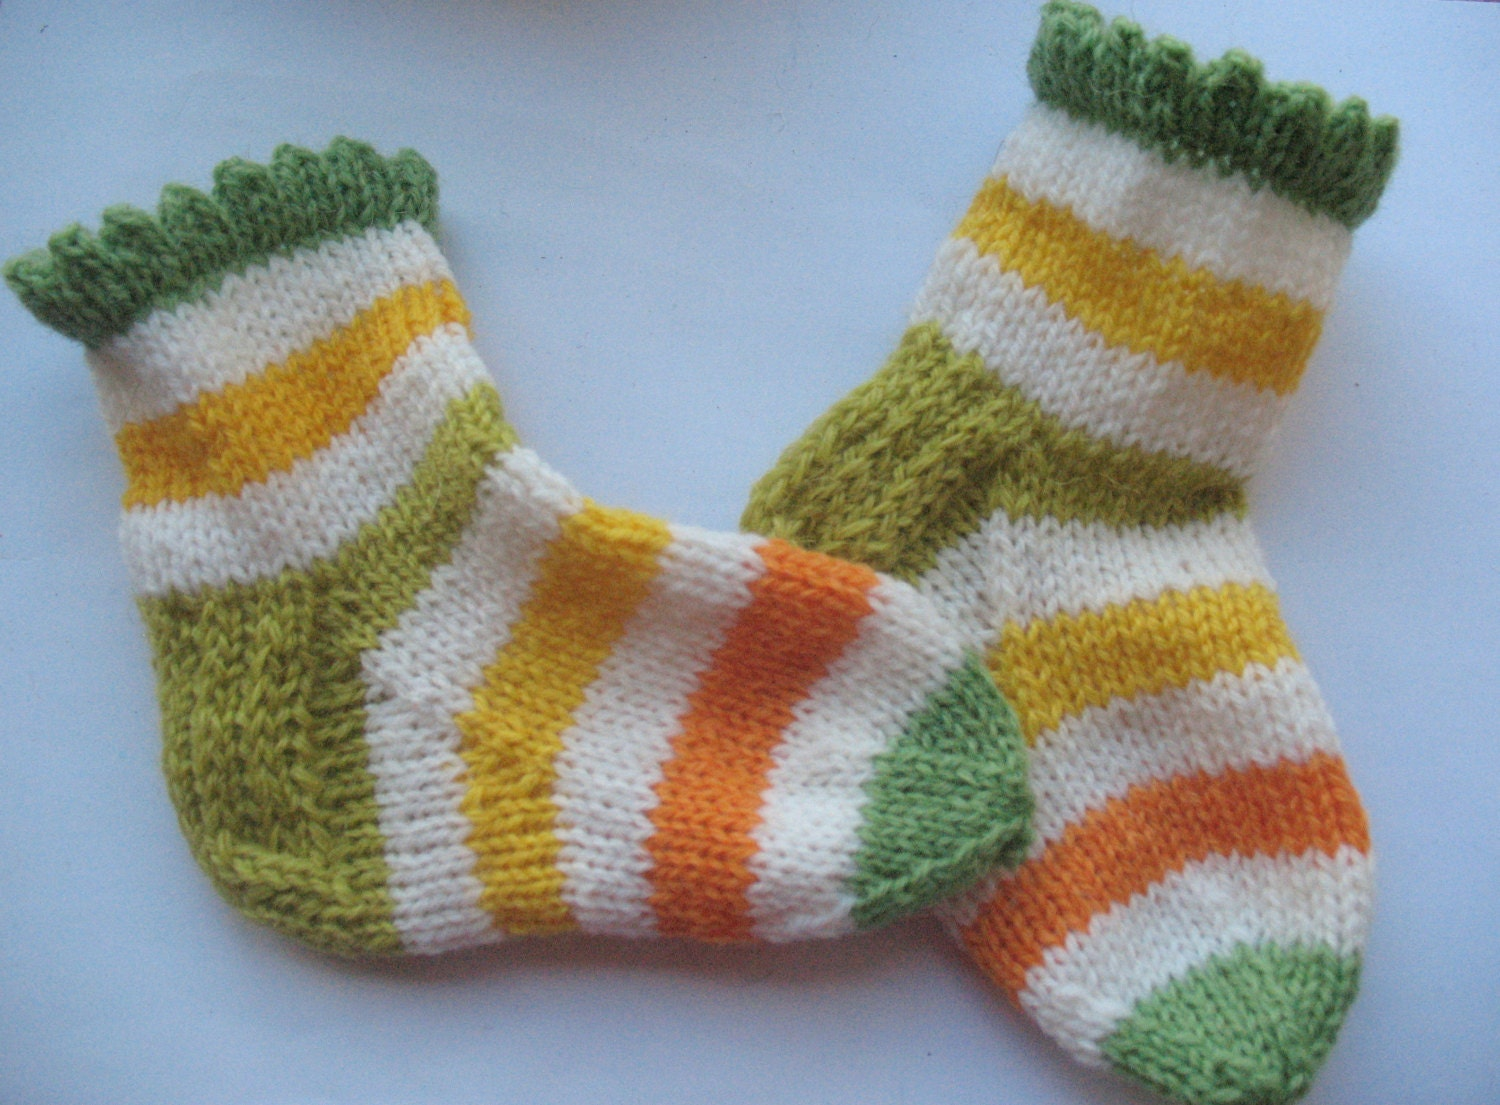 You searched for: wool baby socks! Etsy is the home to thousands of handmade, vintage, and one-of-a-kind products and gifts related to your search. No matter what you're looking for or where you are in the world, our global marketplace of sellers can help you find unique and affordable options. Let's get started!